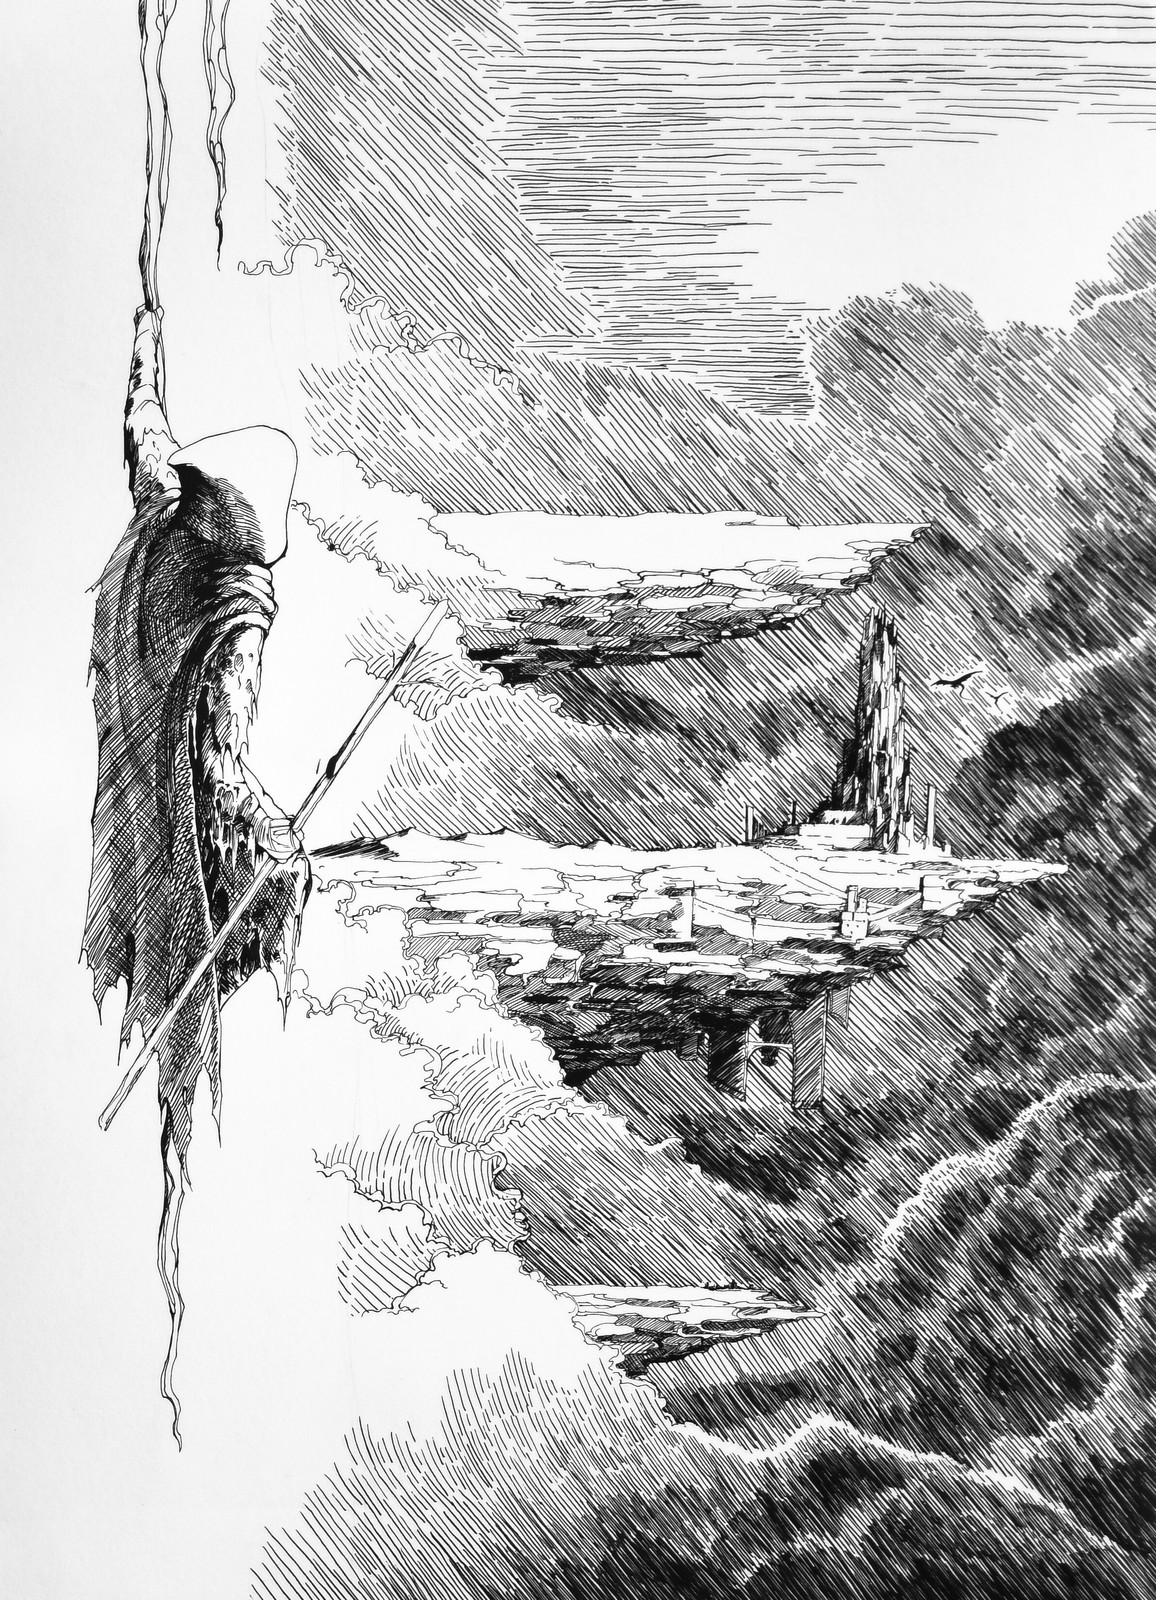 Lee Dabeen. On the Fall. 2018. Pen on paper, 545 x 394 mm.